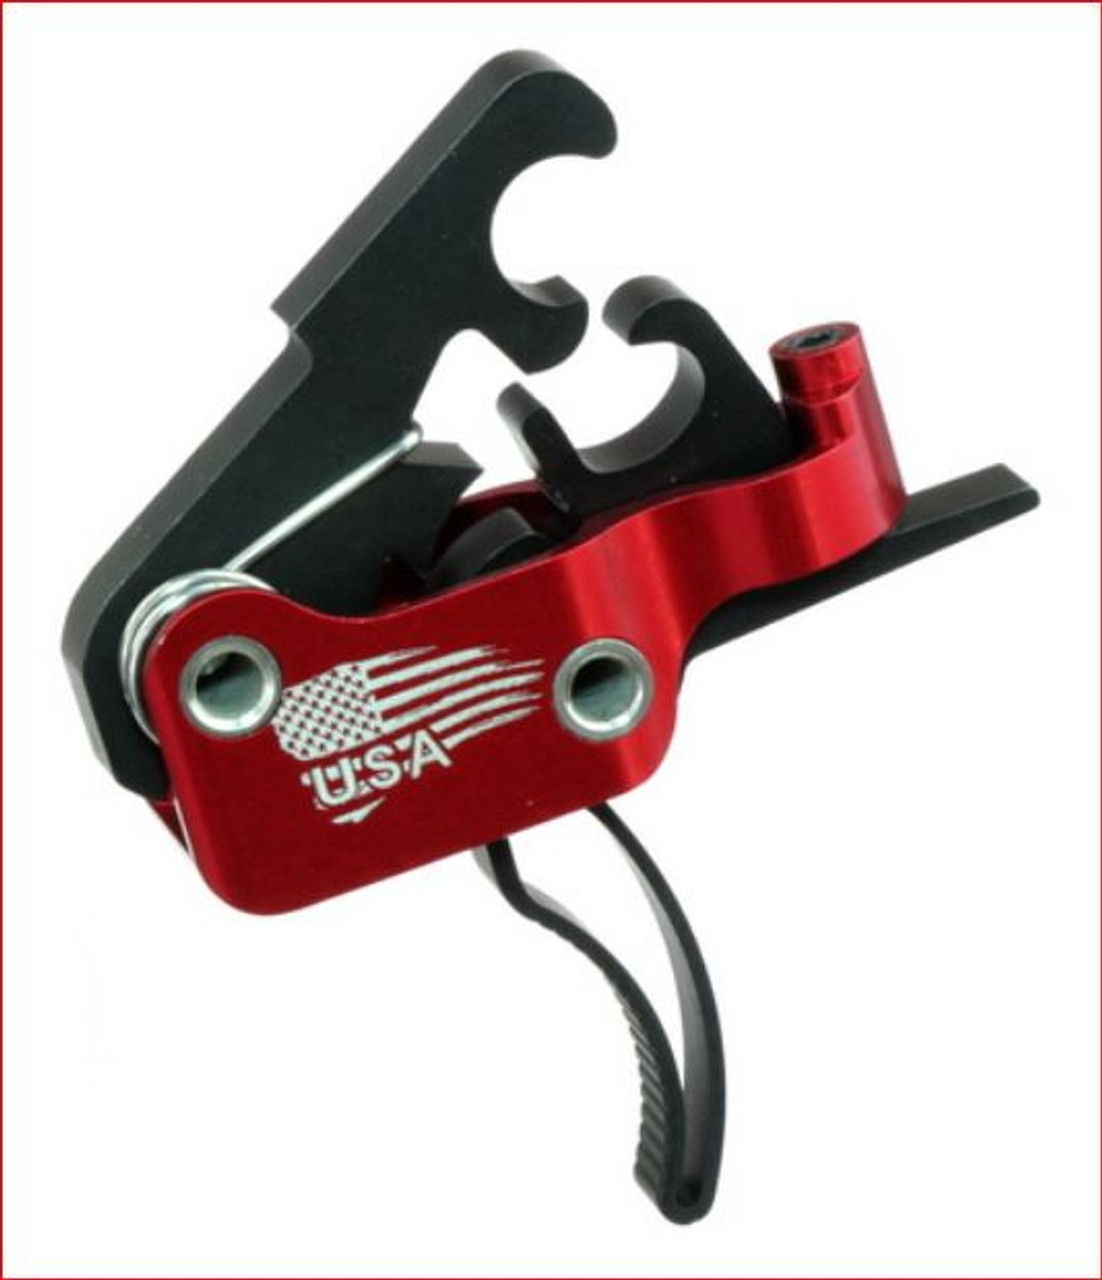 Elftmann AR-15 Match Drop-In Trigger Curved